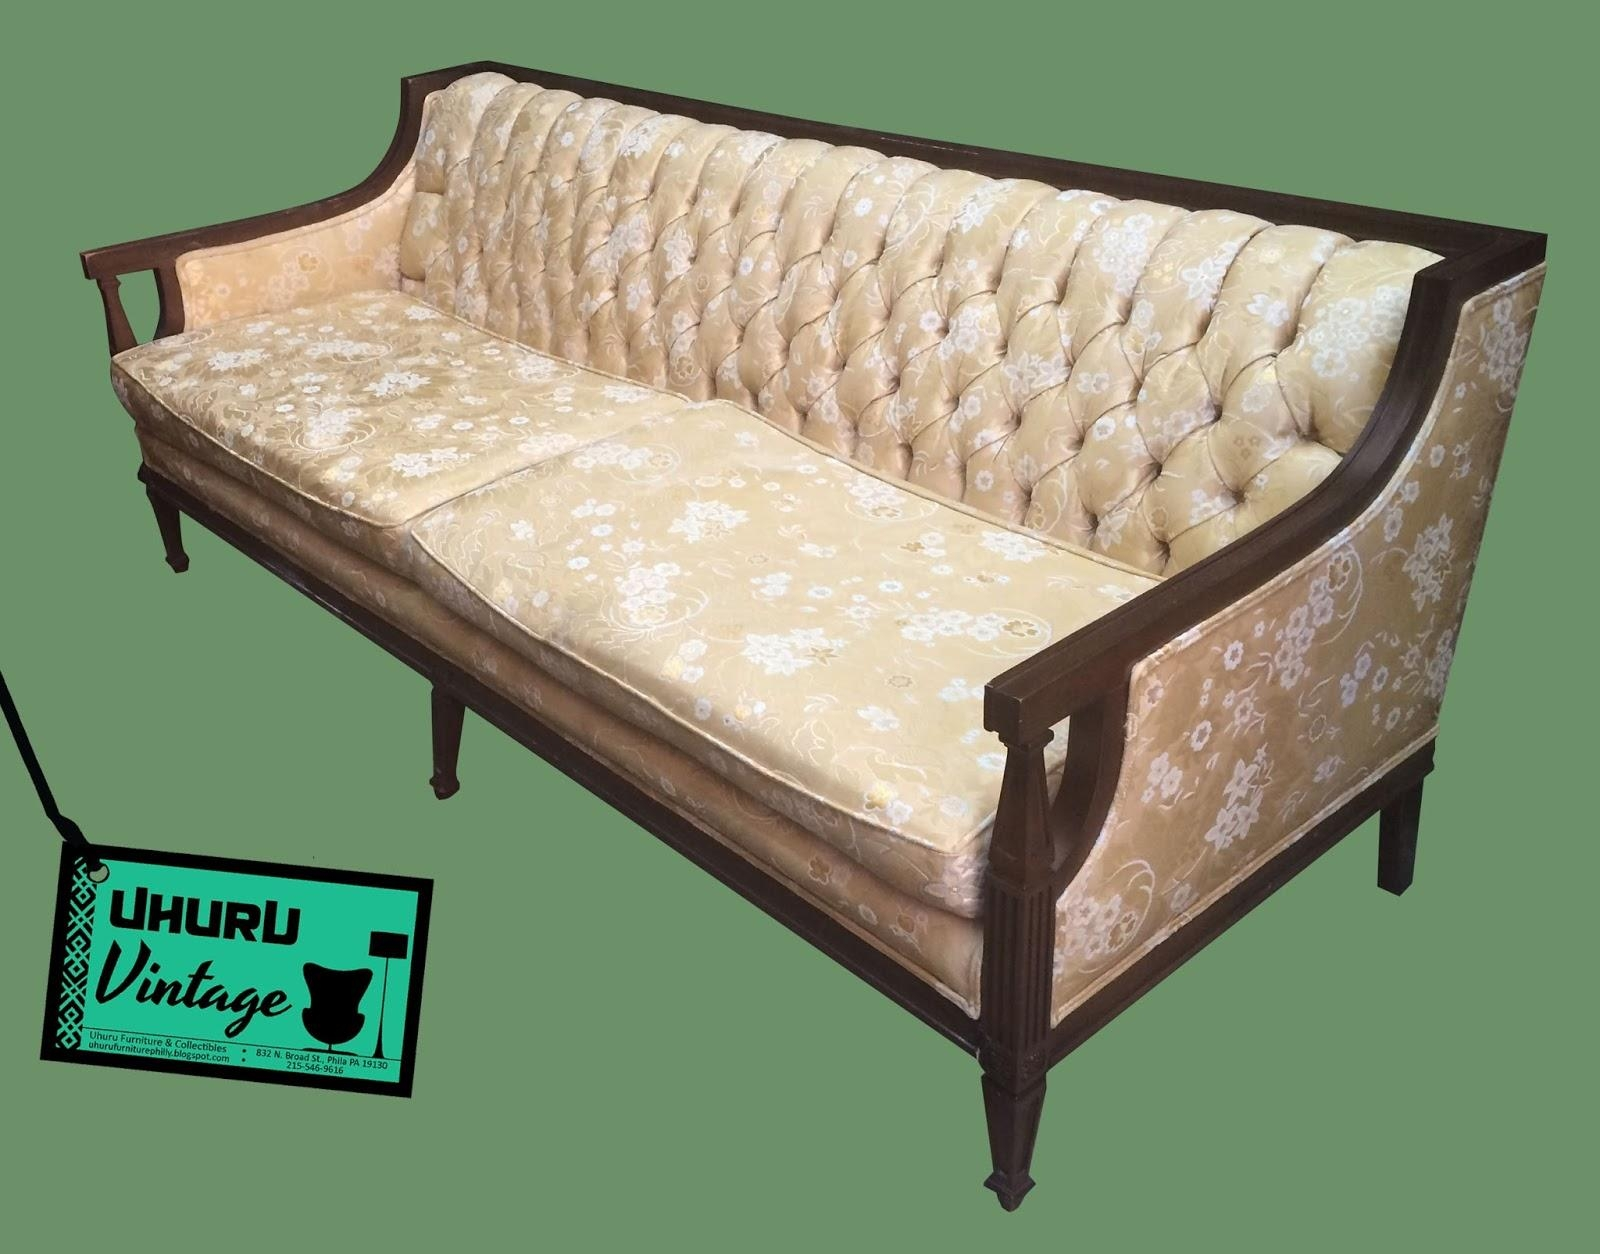 Uhuru Furniture & Collectibles: Vintage Brocade Sofa - $195 $175 Sold for Brocade Sofas